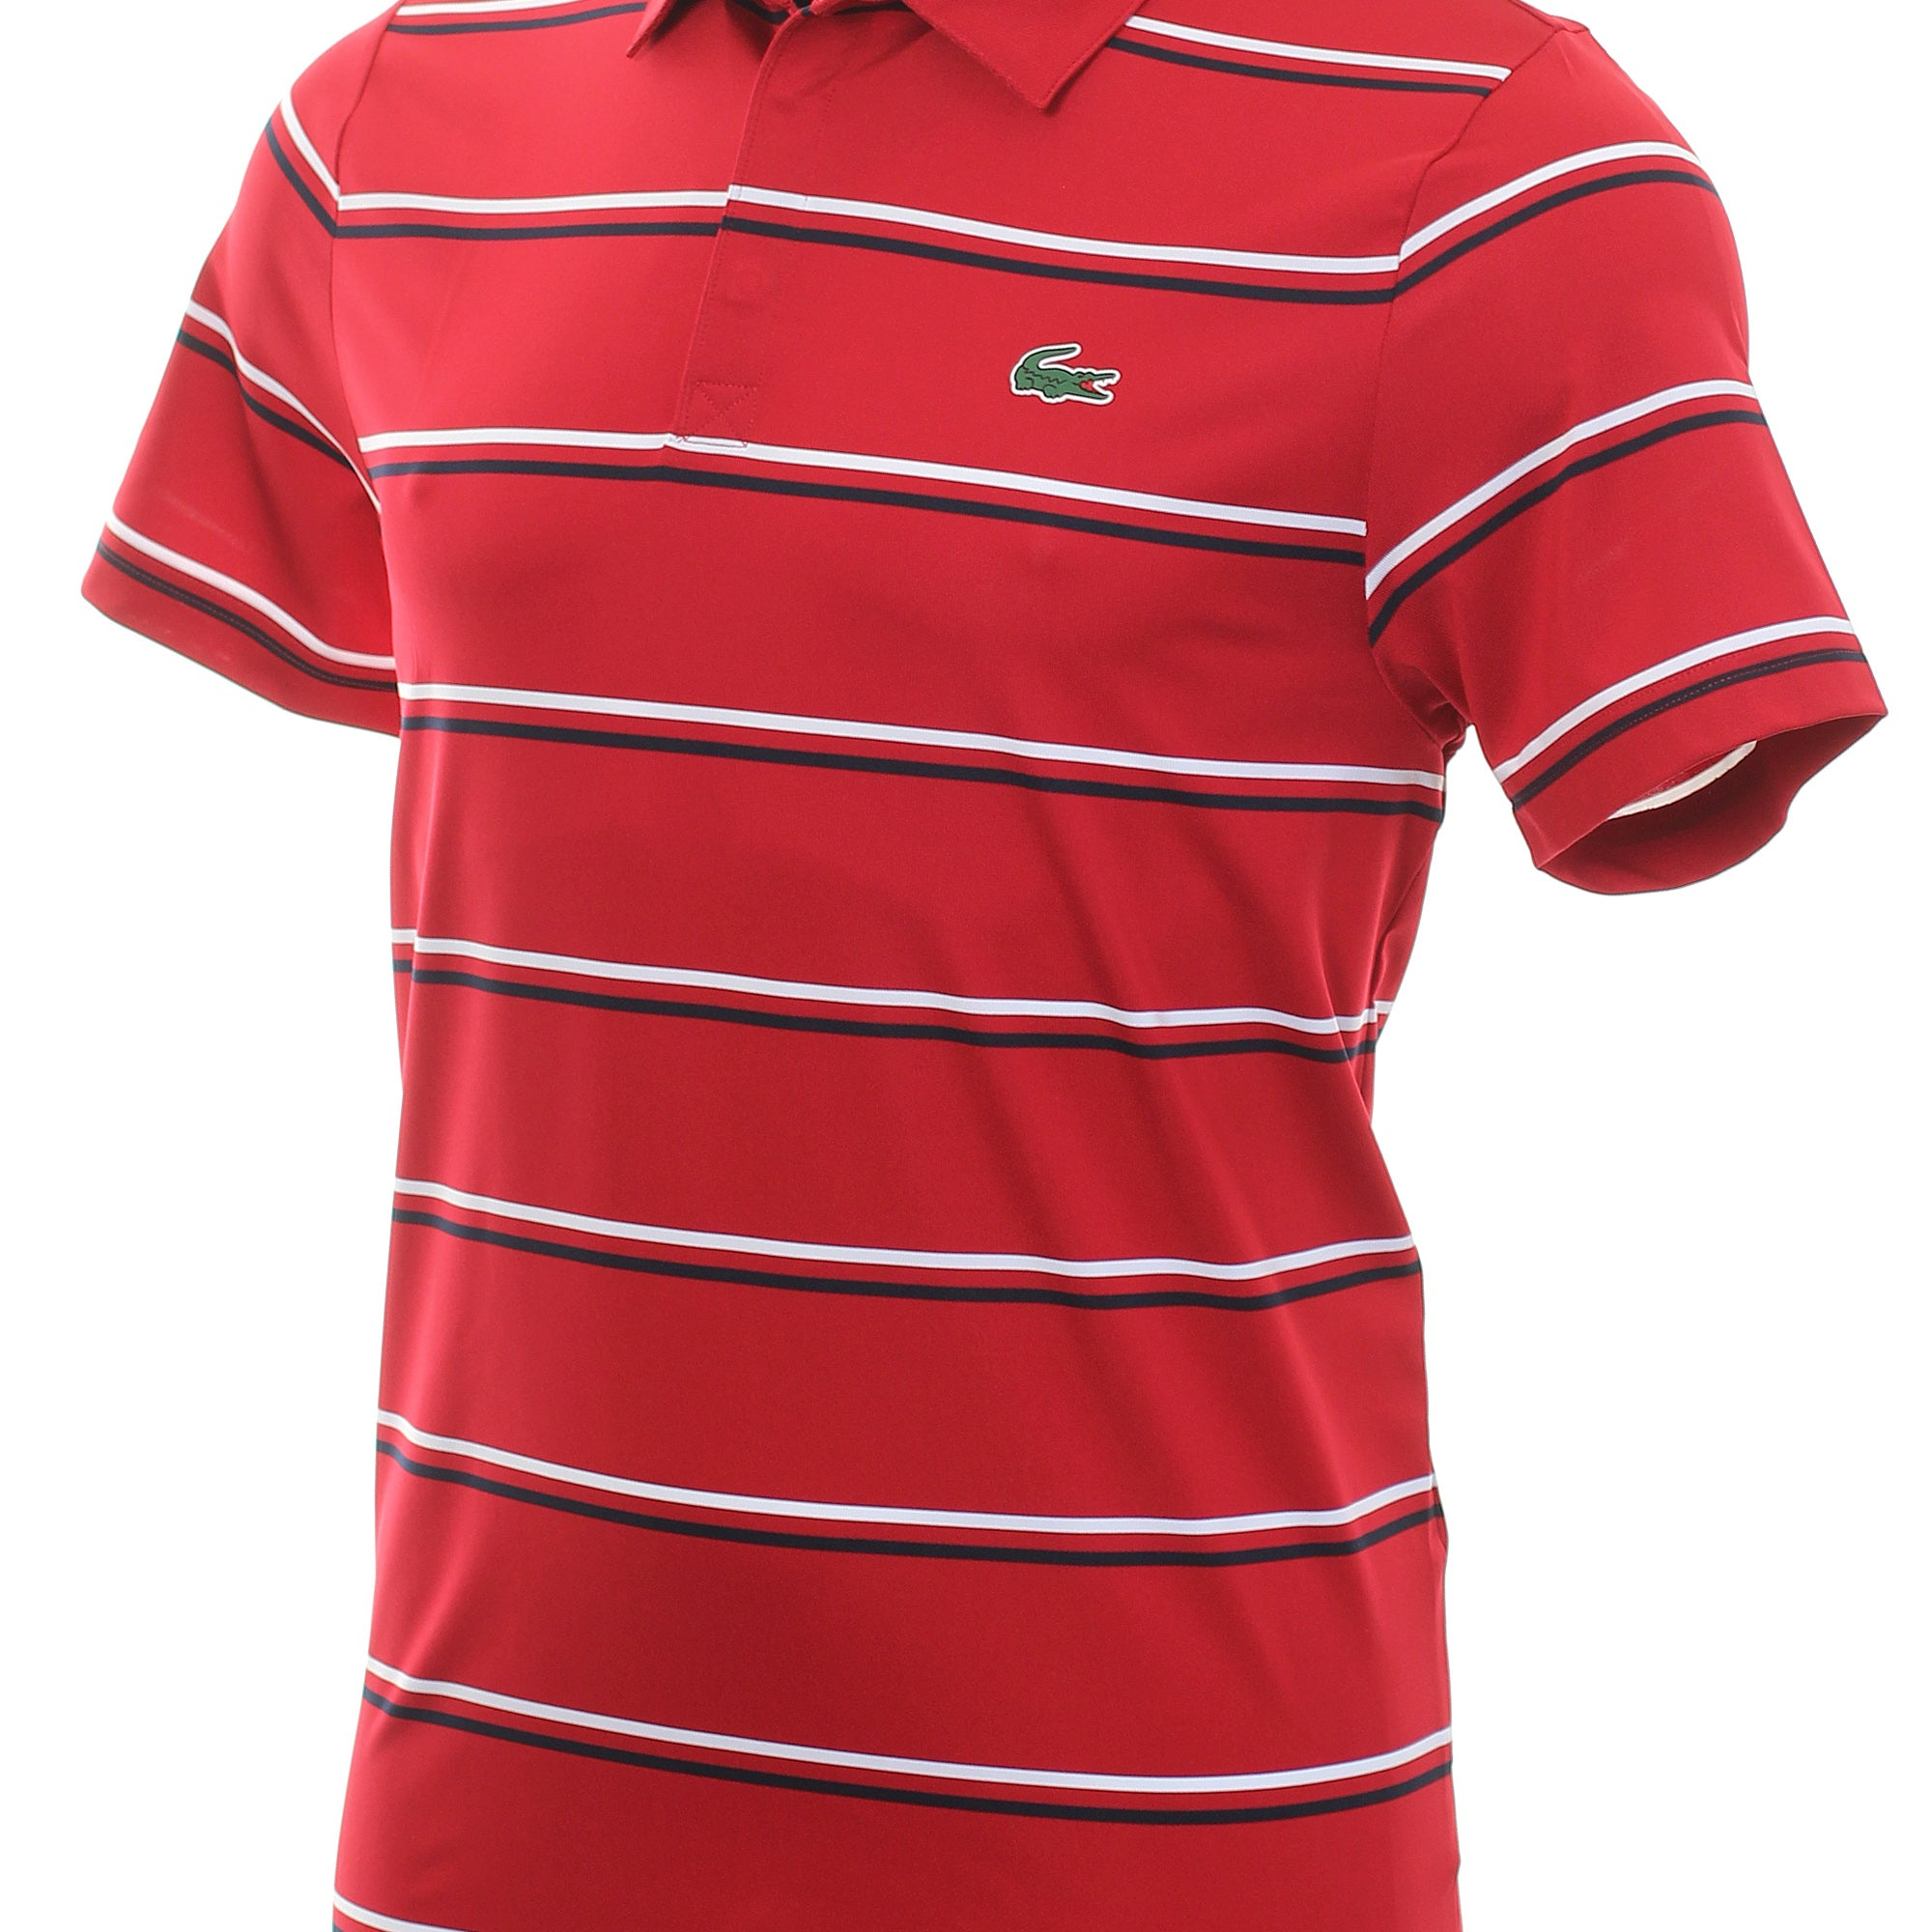 Lacoste Technical Stripe Jersey Polo Shirt DH8607